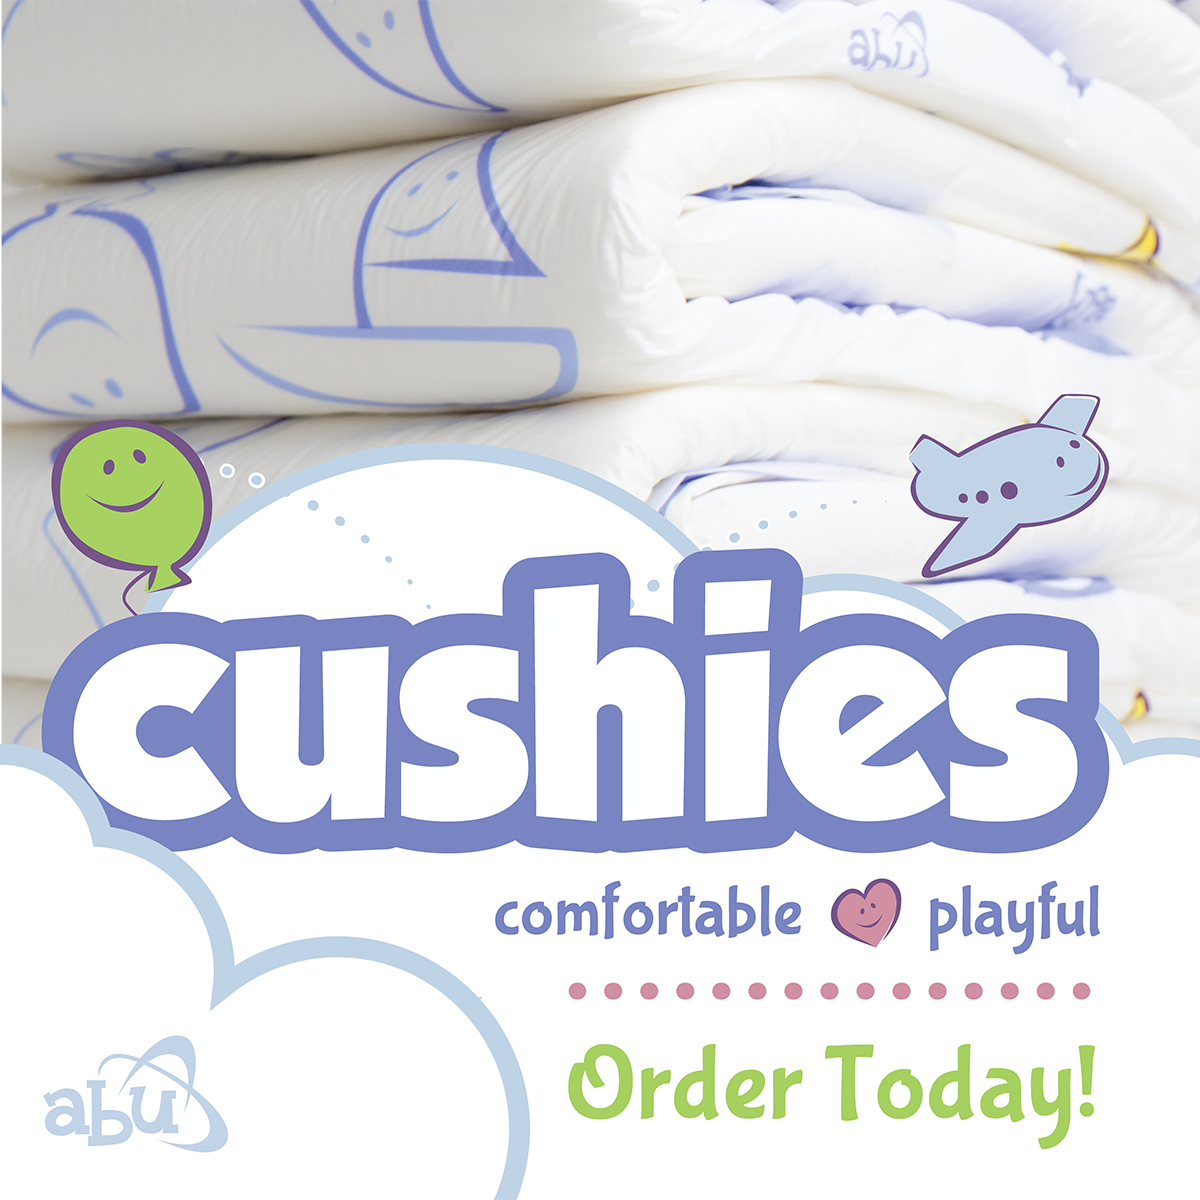 ABU Cushies Diapers